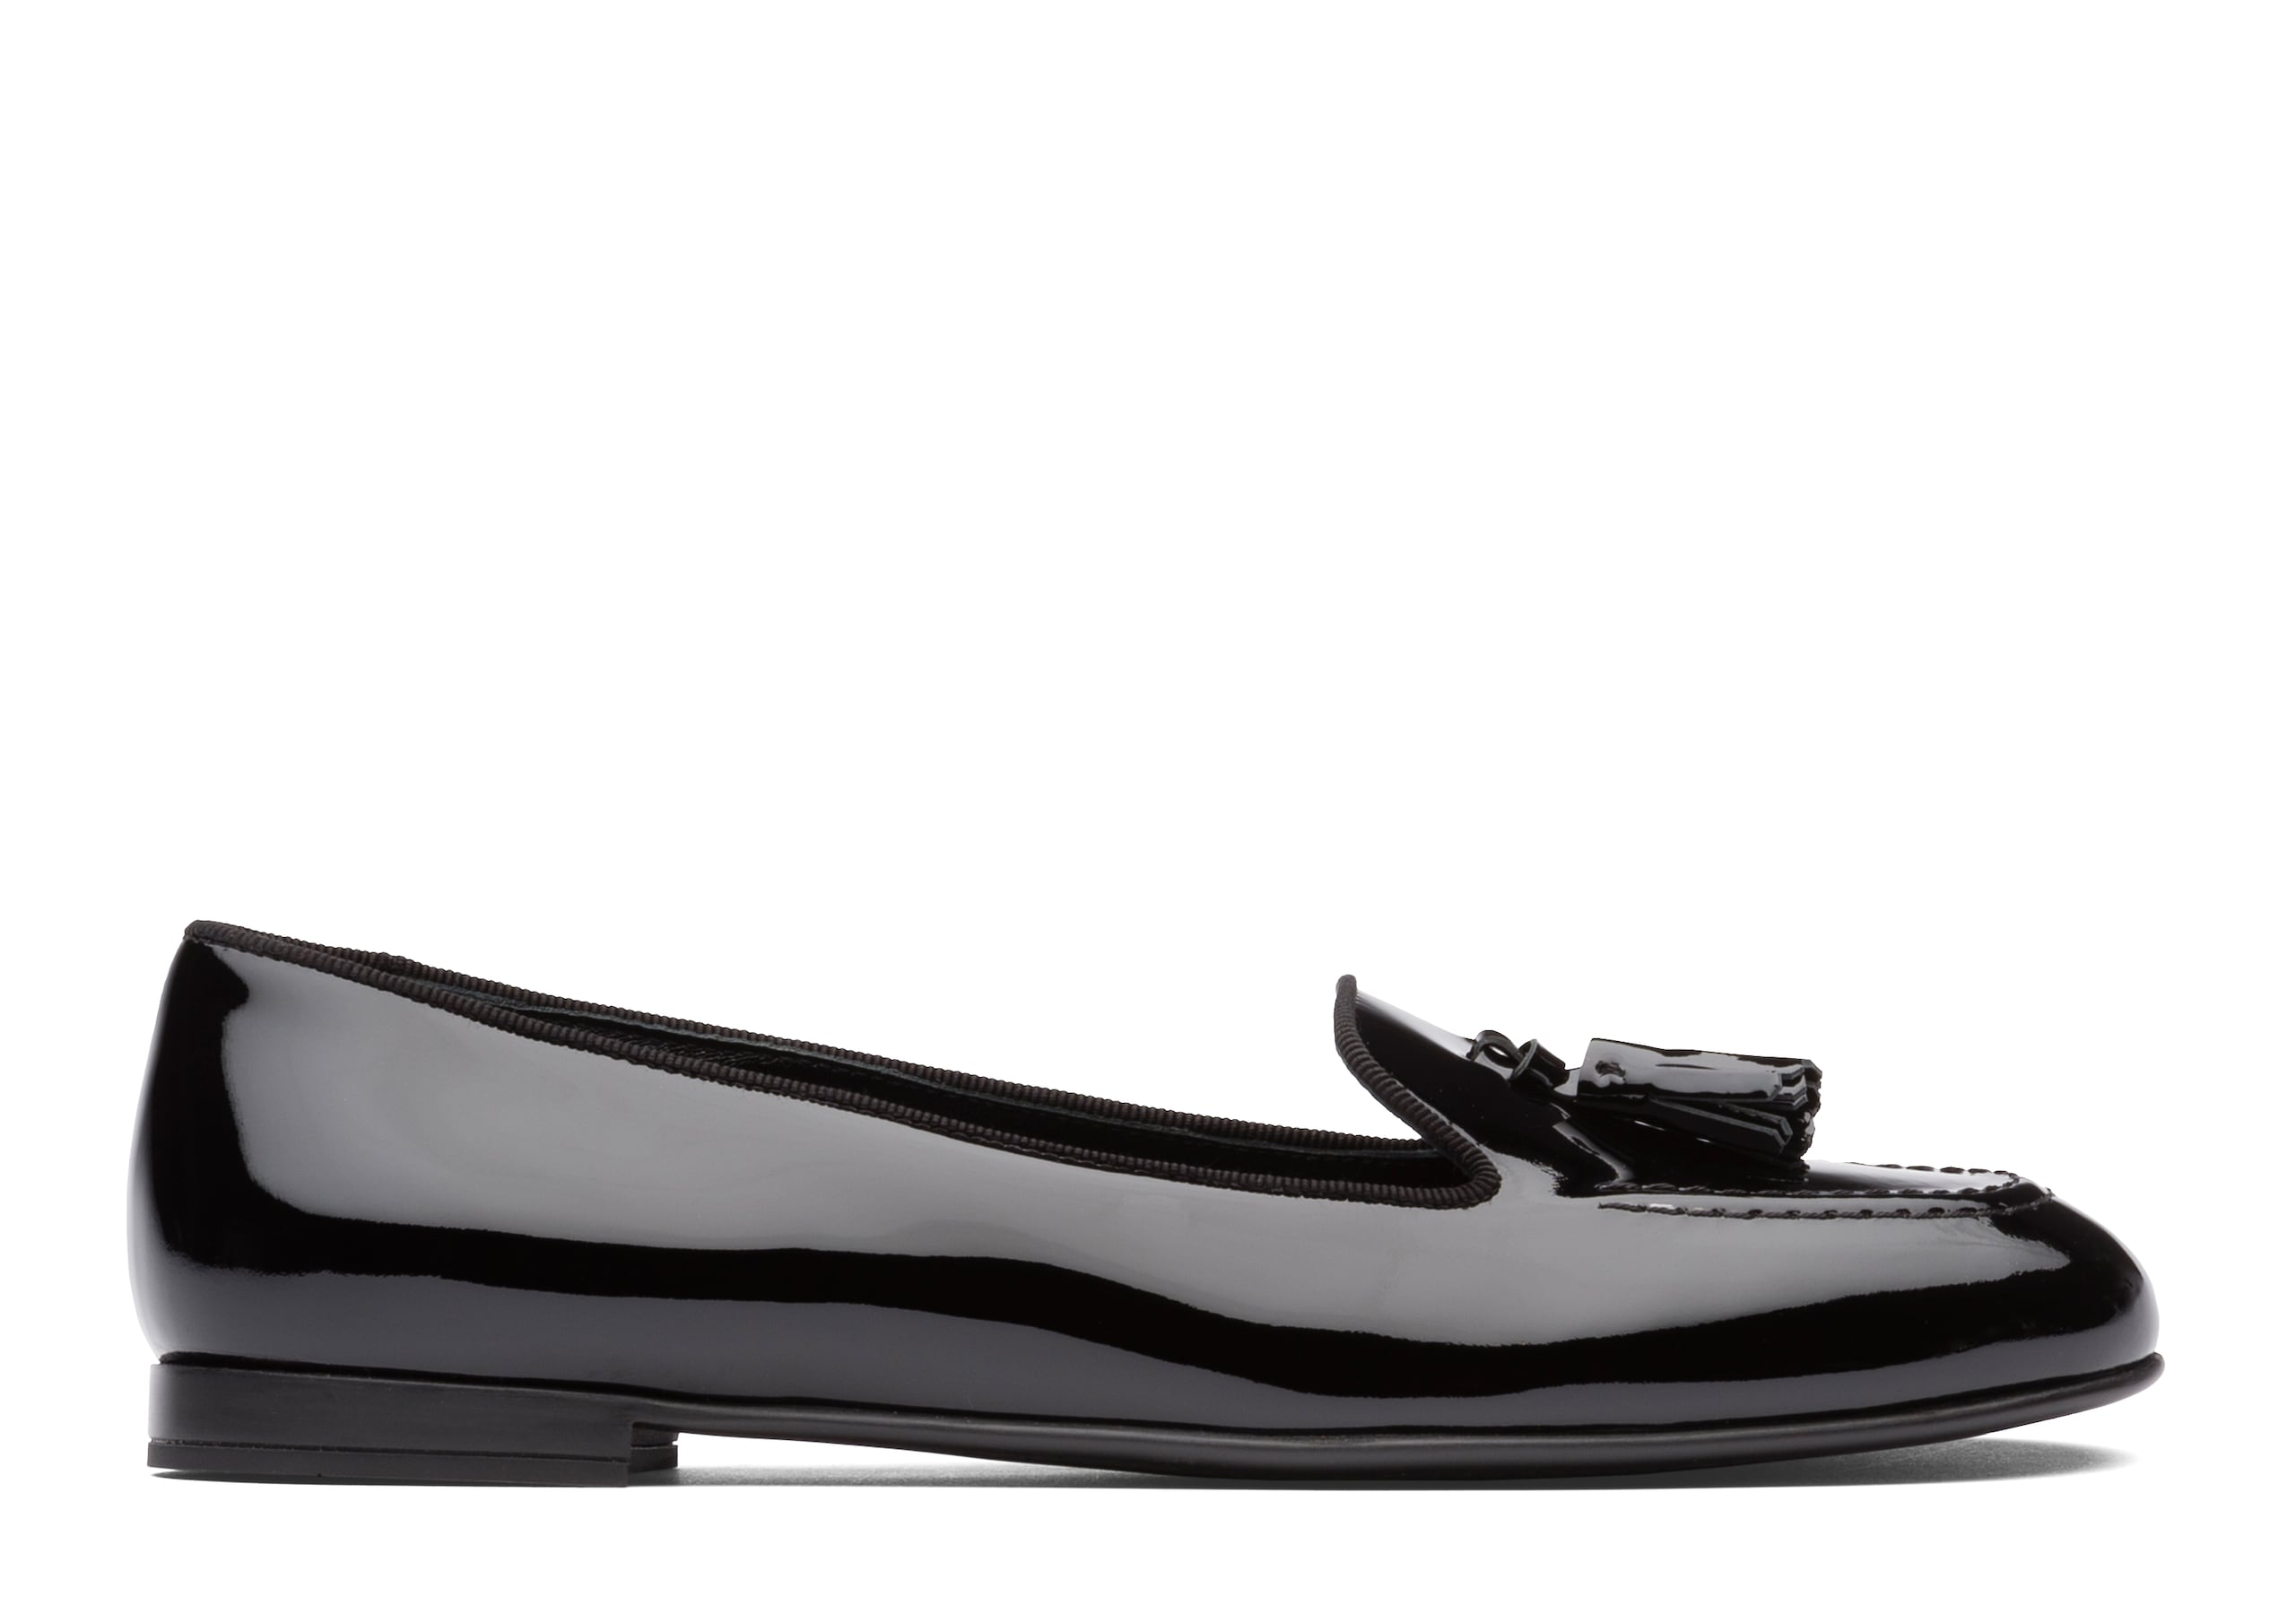 Nina Church's Patent Leather Tassel Loafer Black